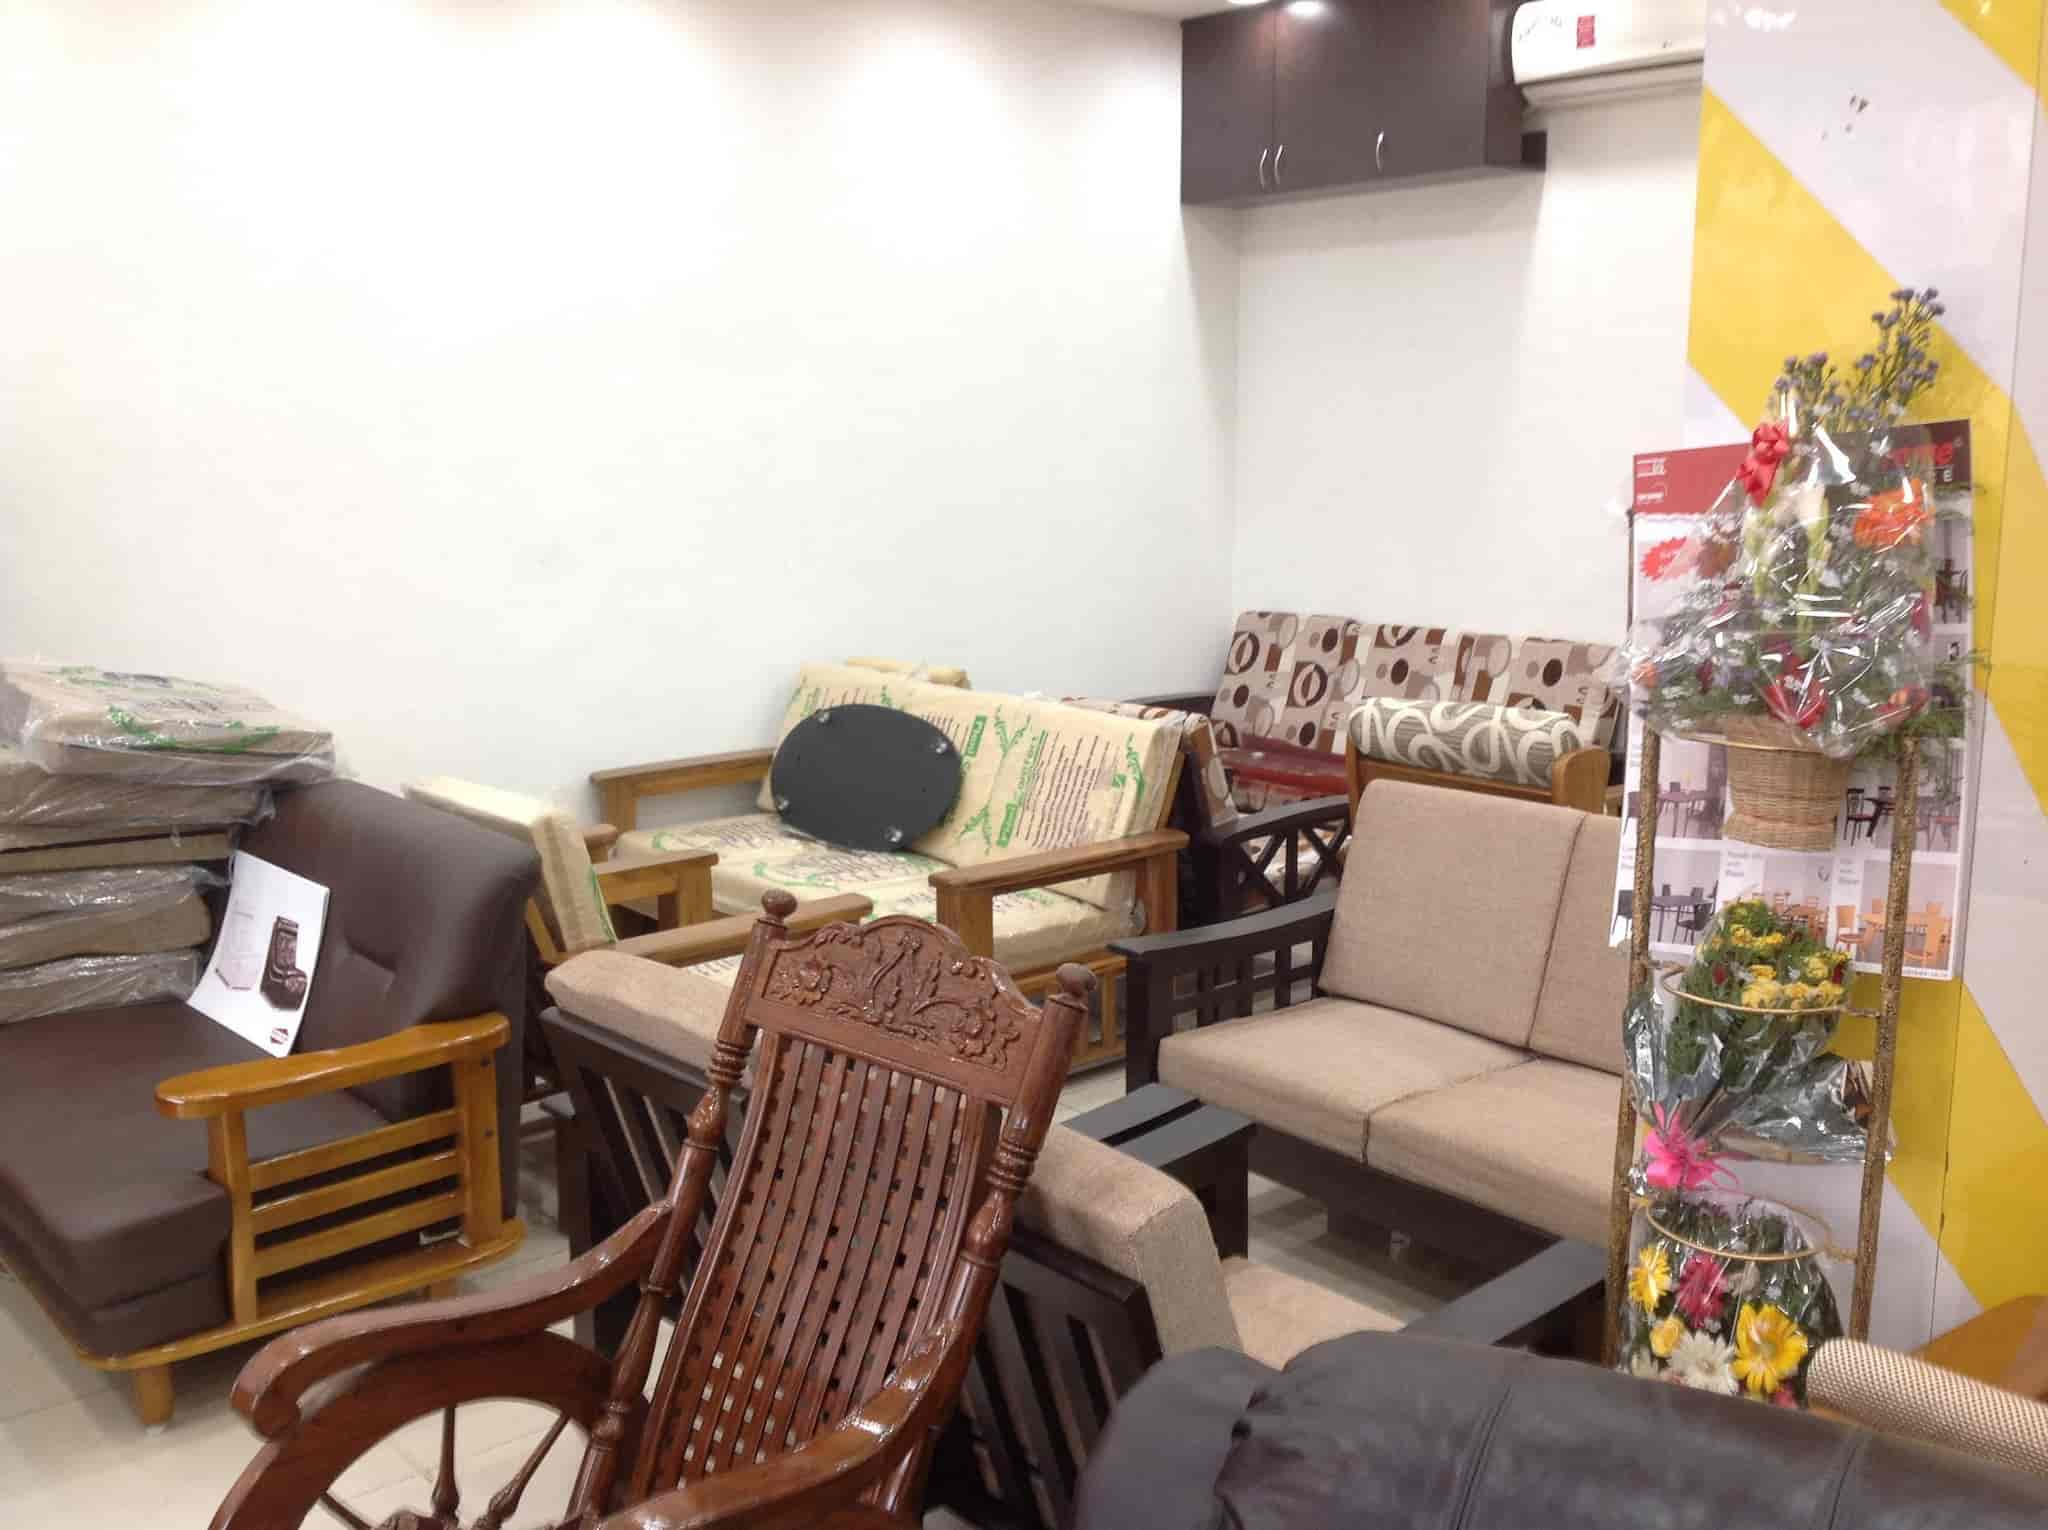 Wood At Home Redhills Furniture Dealers in Chennai Justdial